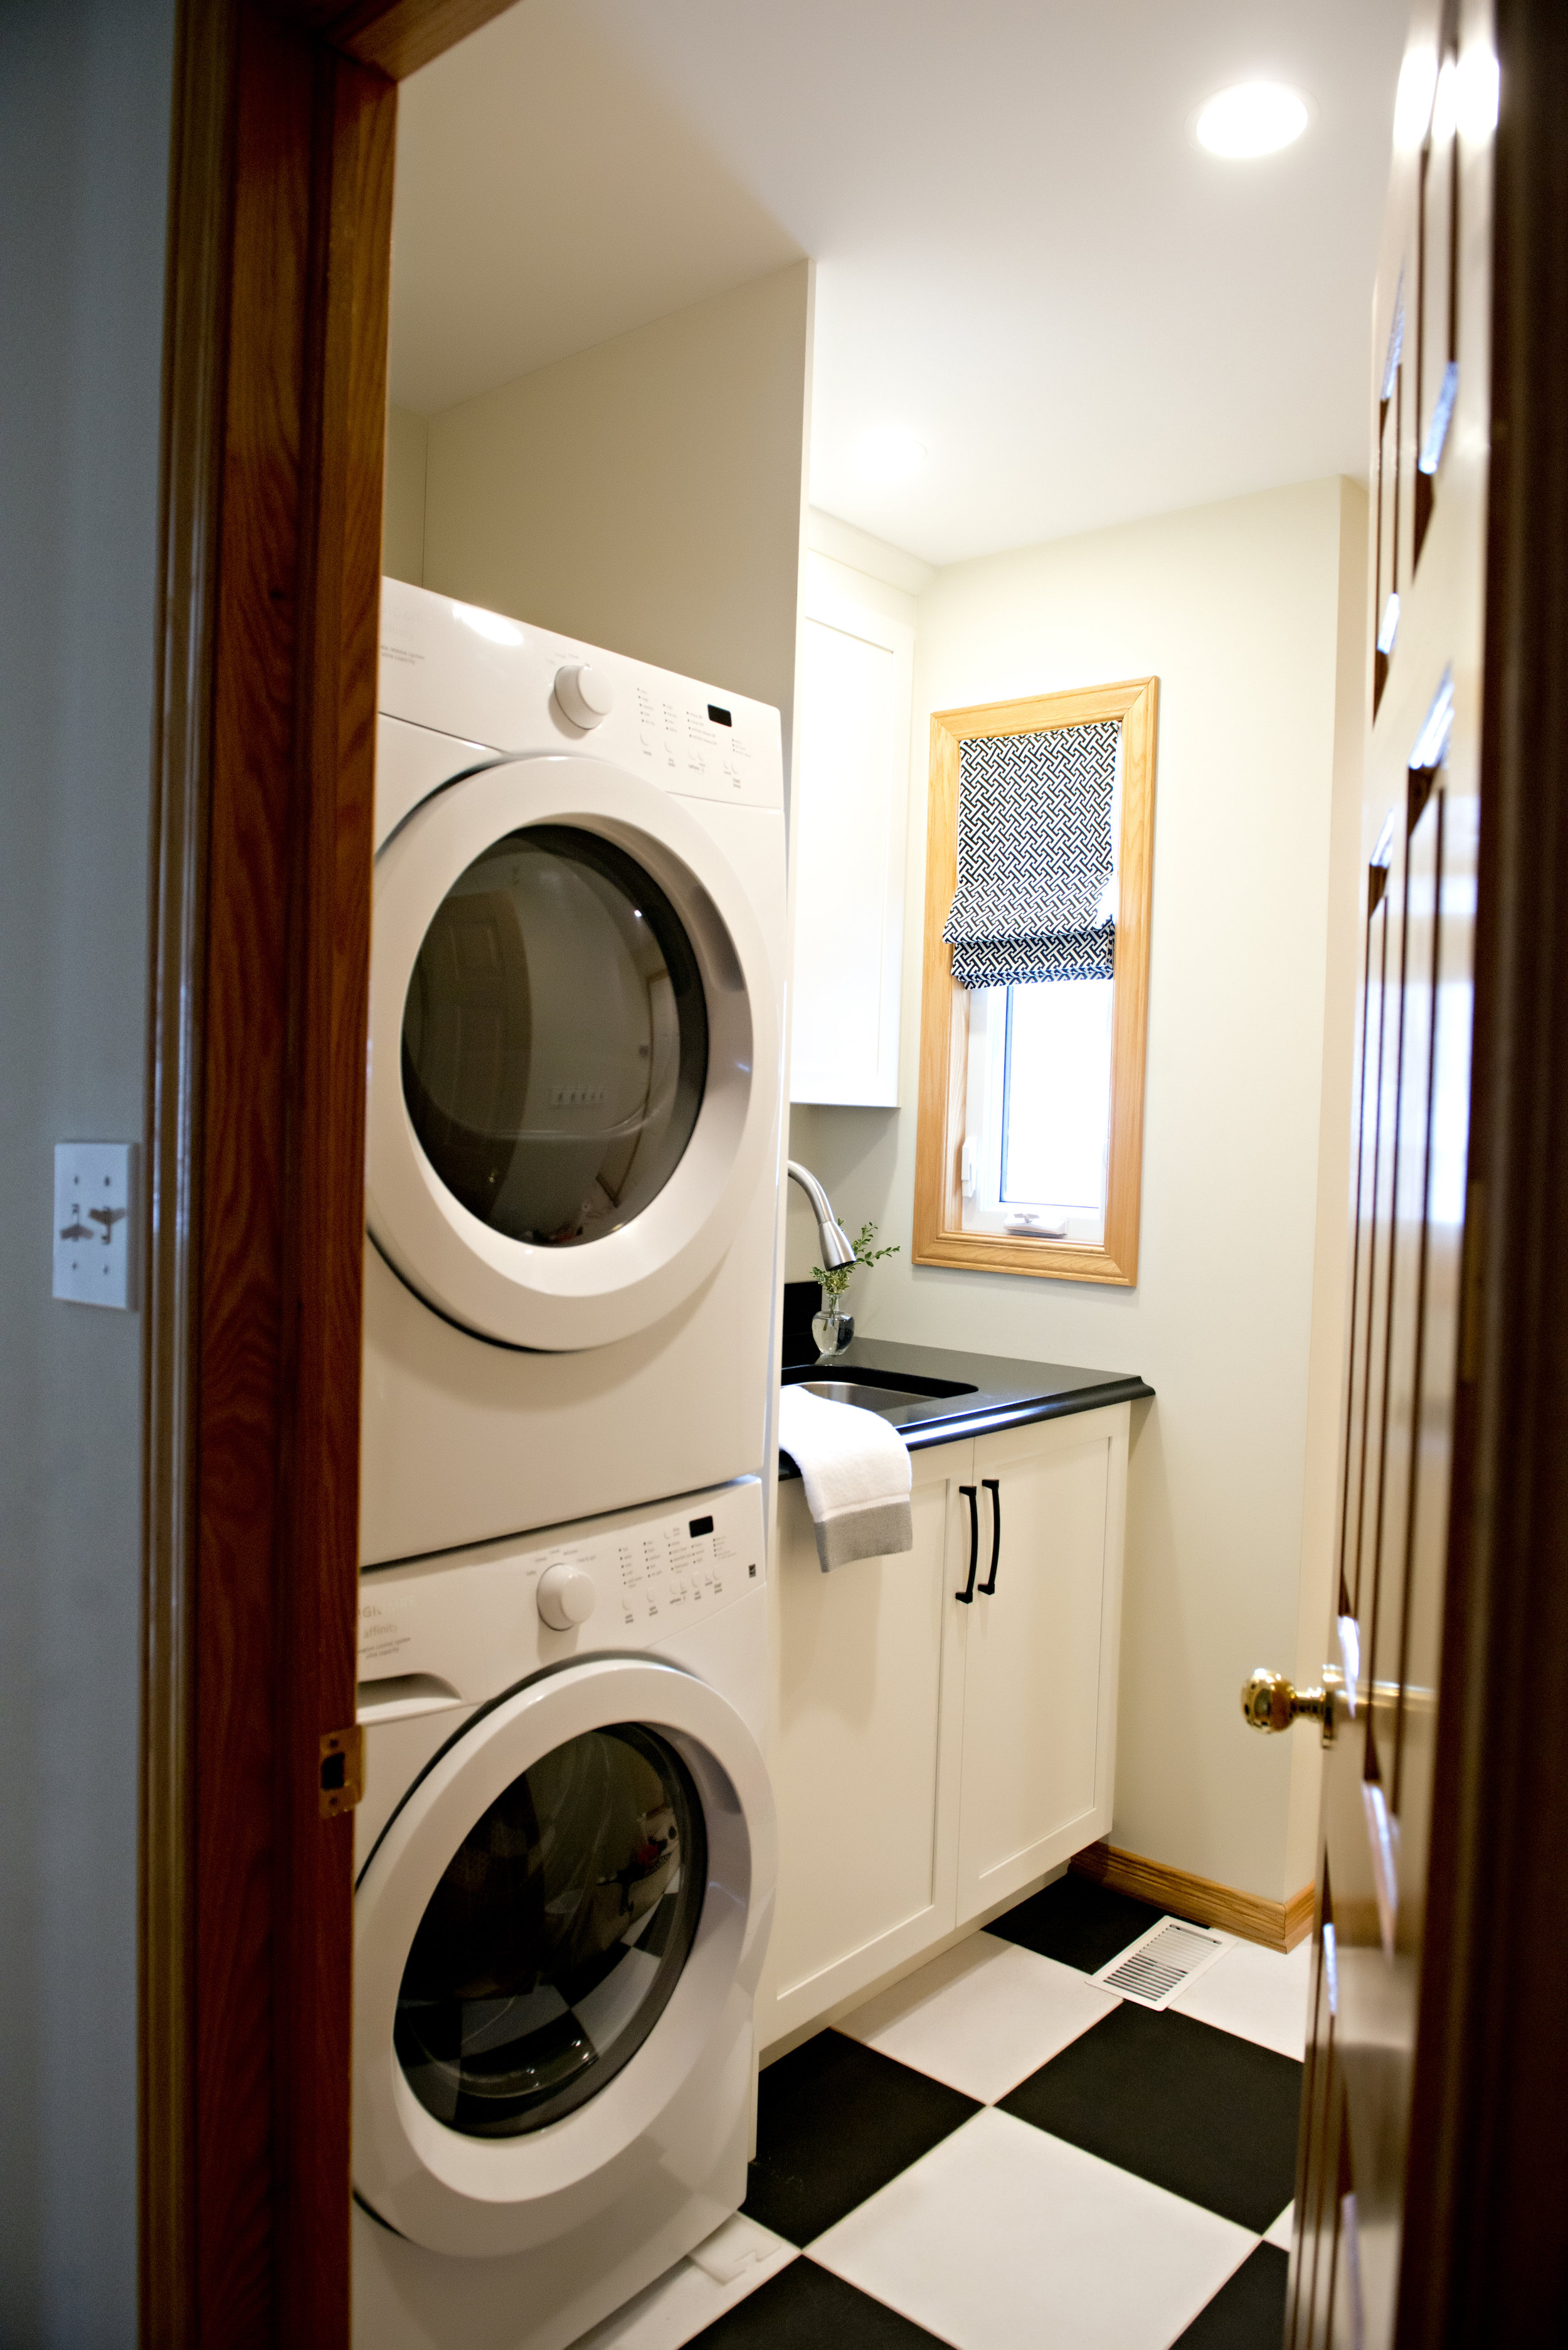 Cedar-Brae-Project-Laundry-Room-Black-White-Fl